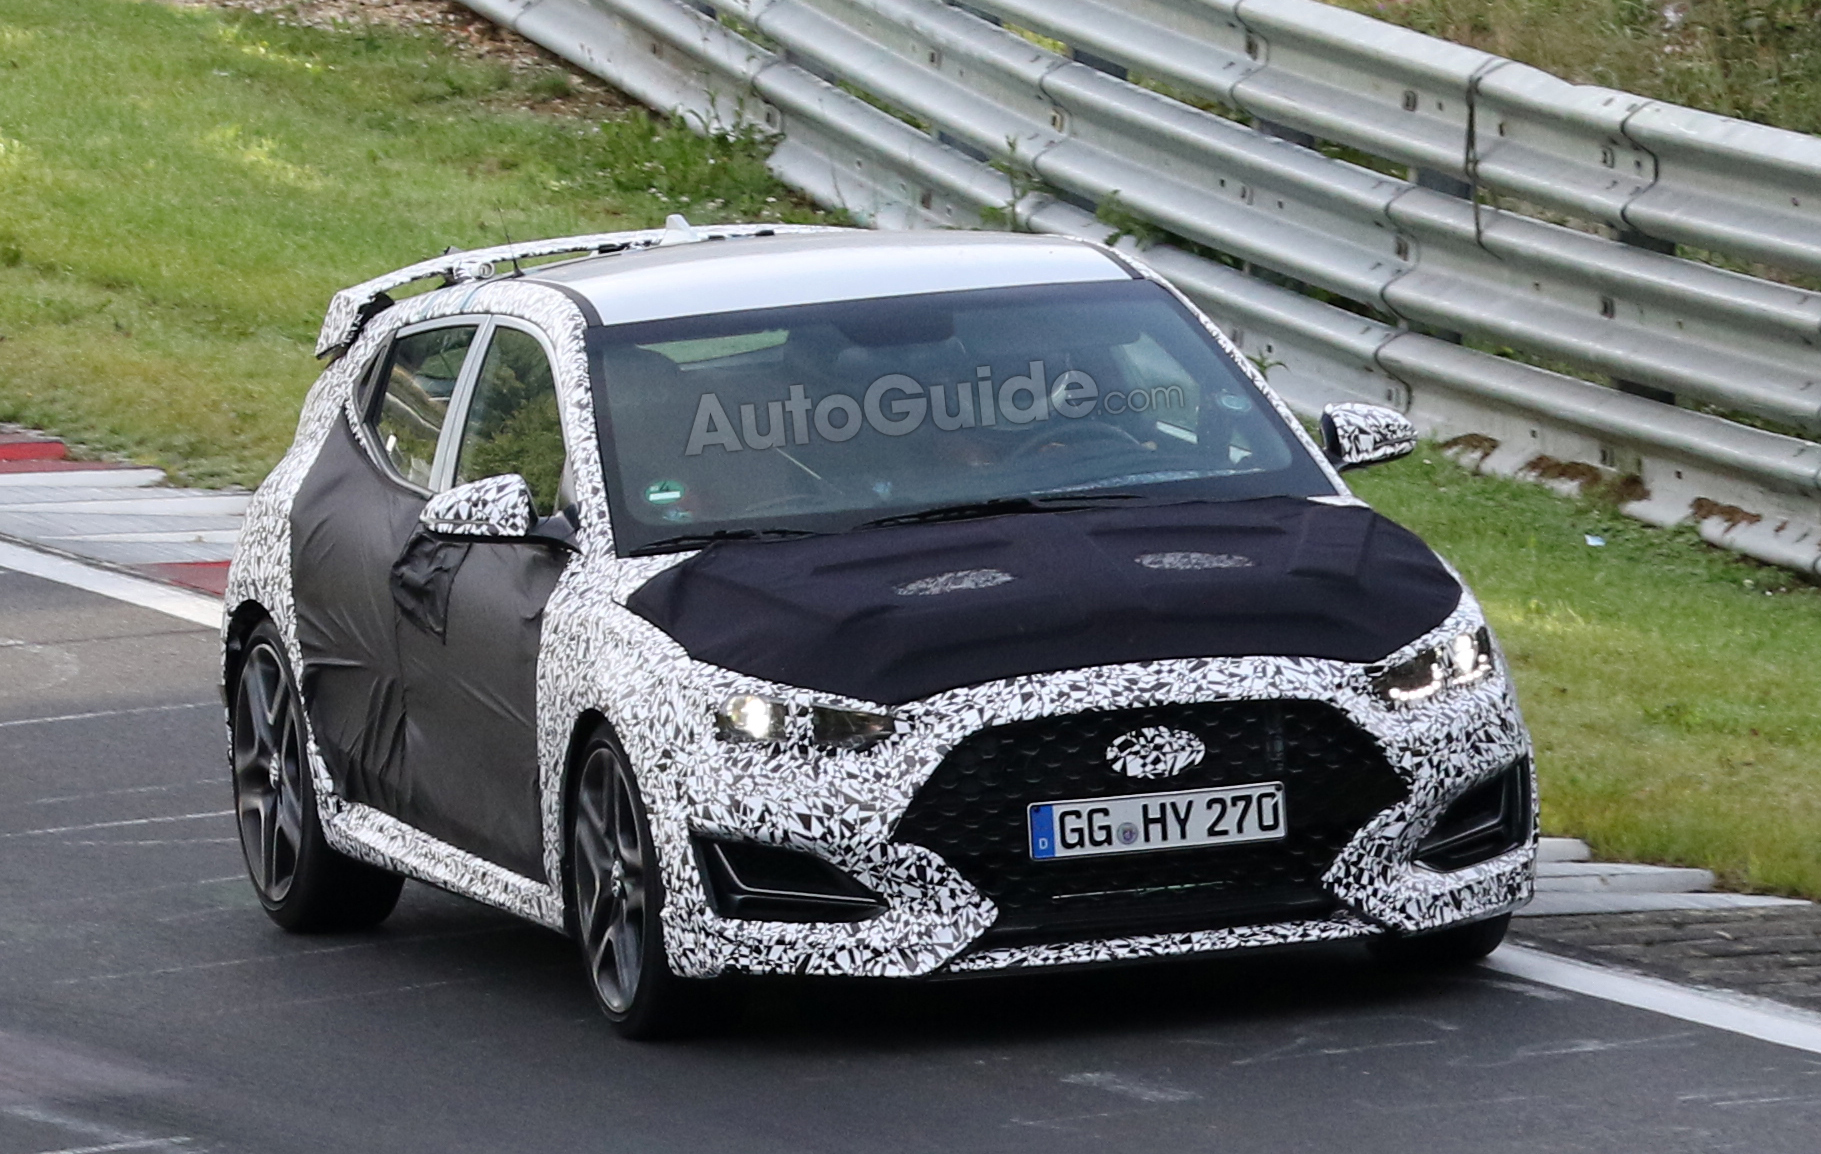 veloster hyundai review expert of used vehicle